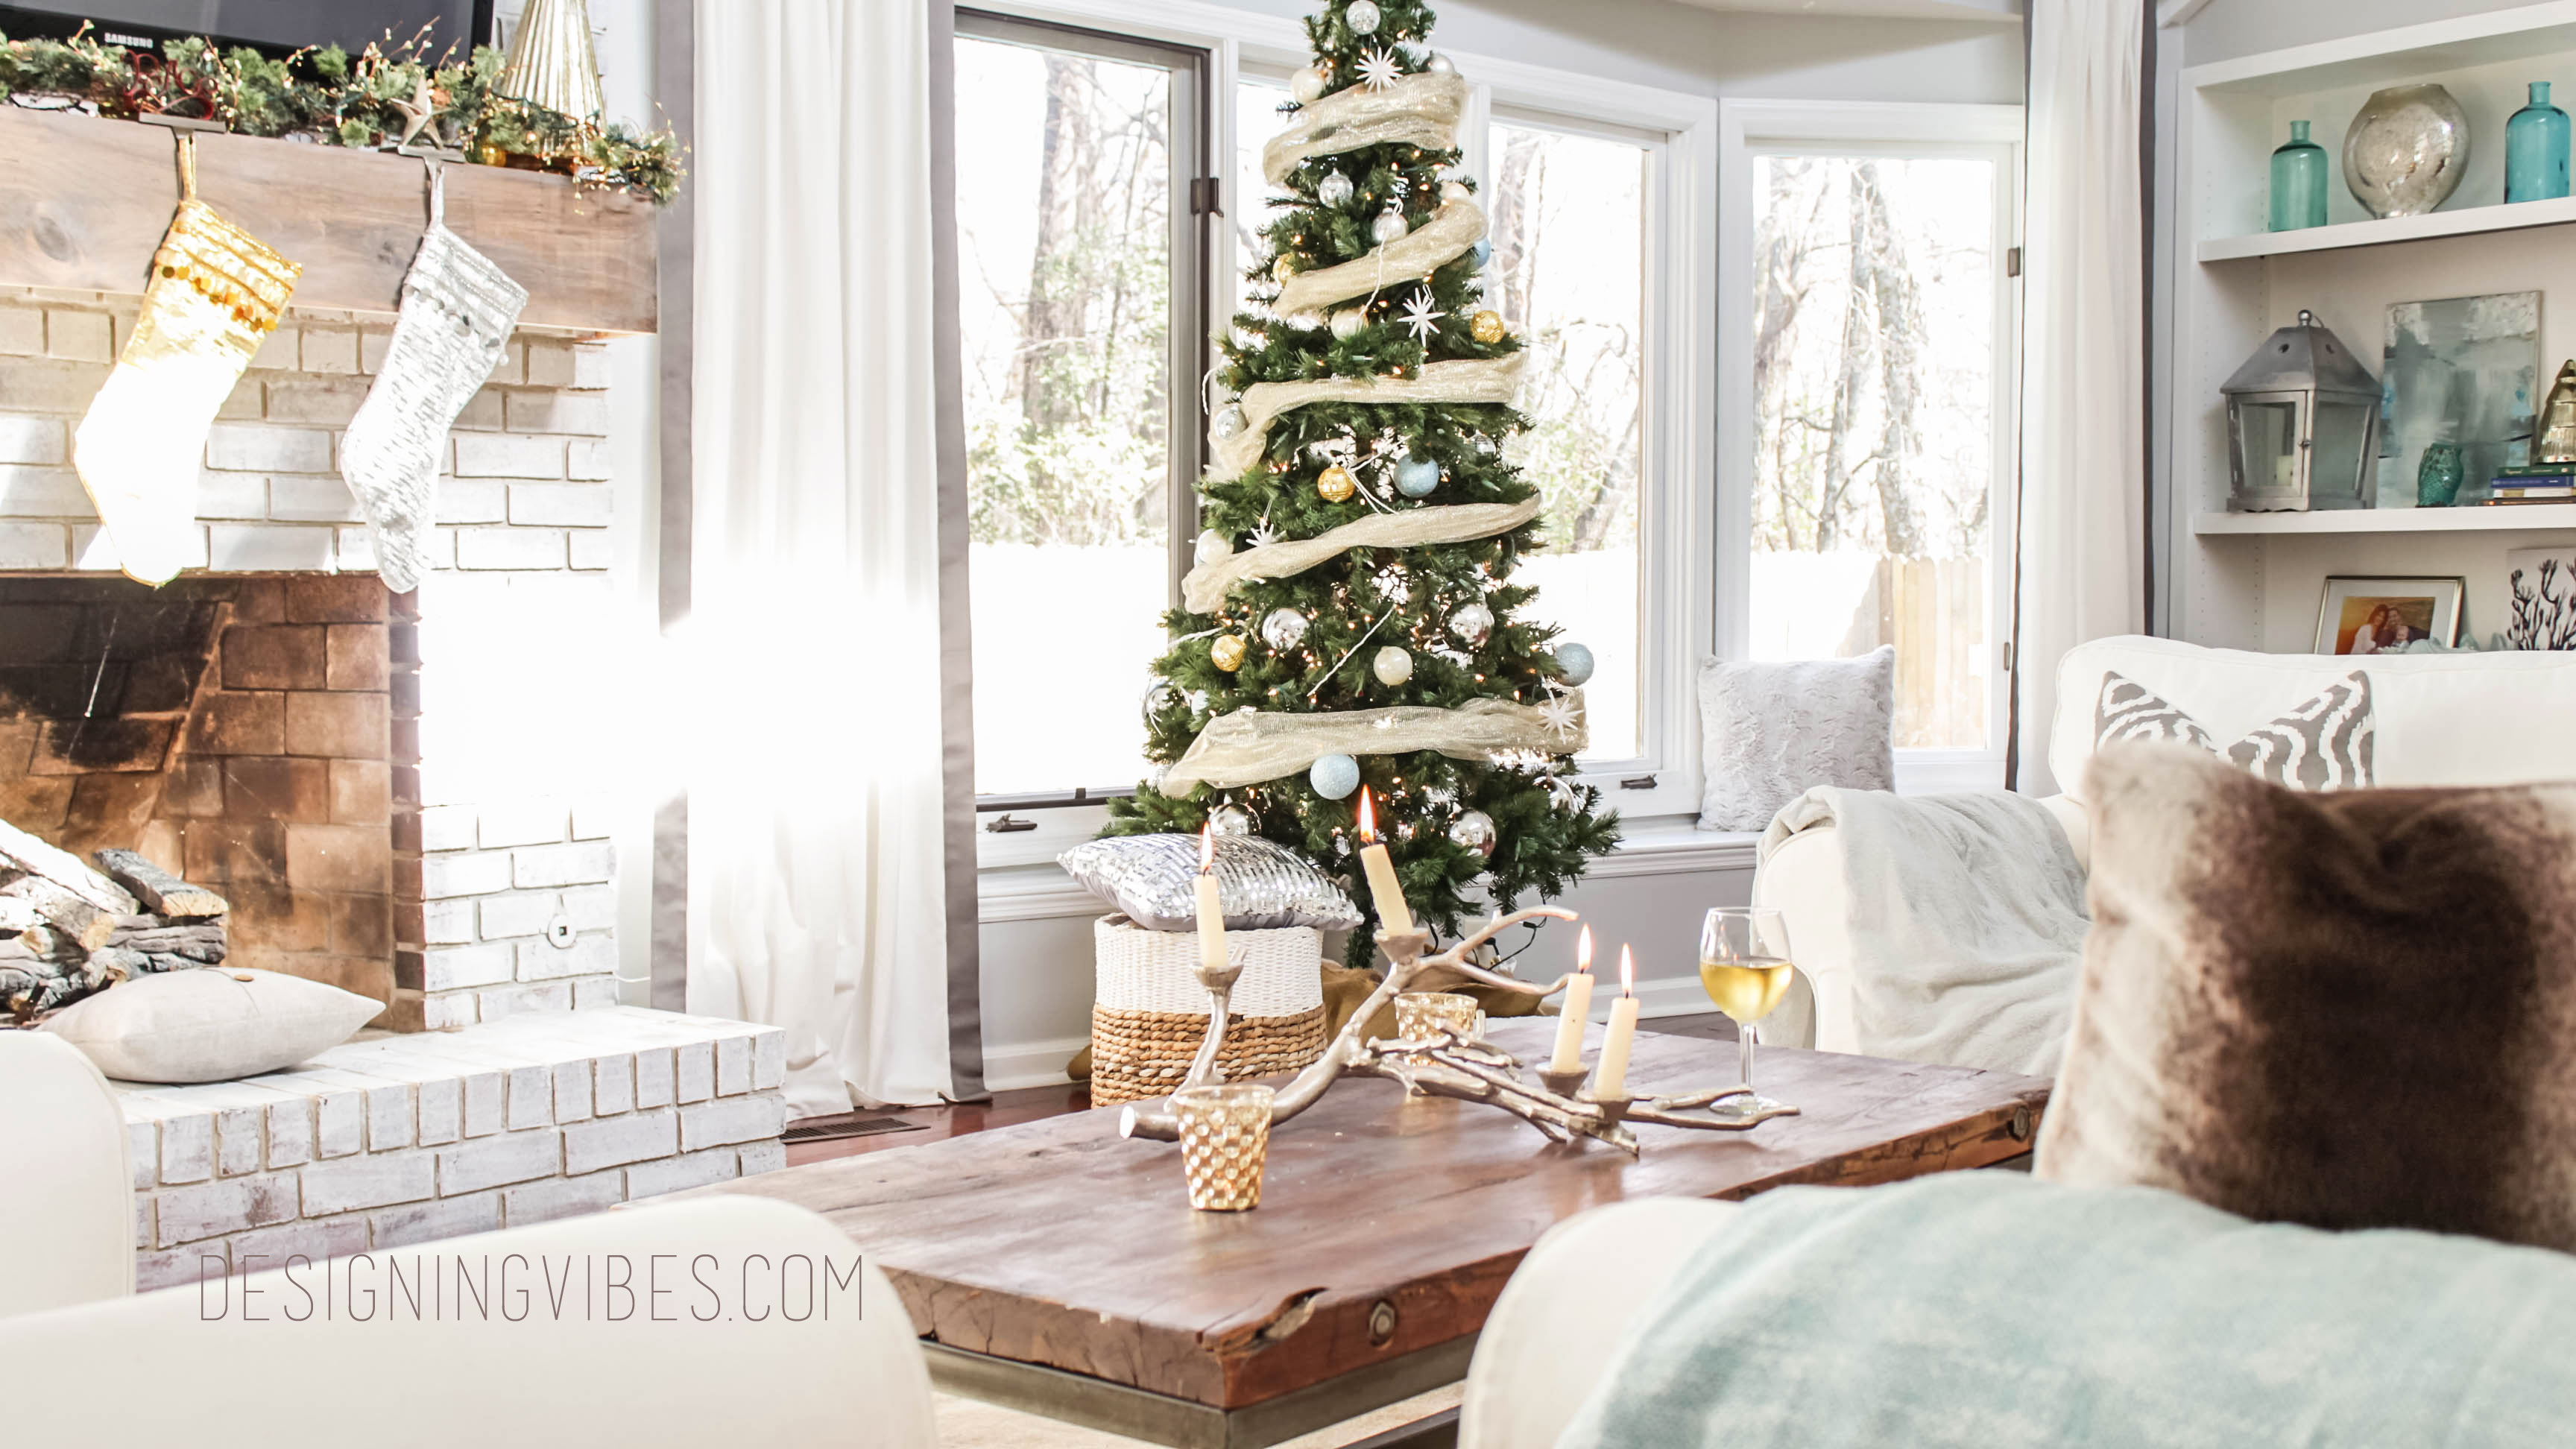 Living Room Christmas Rustic Glam Holiday Decor Home Tour Part 1